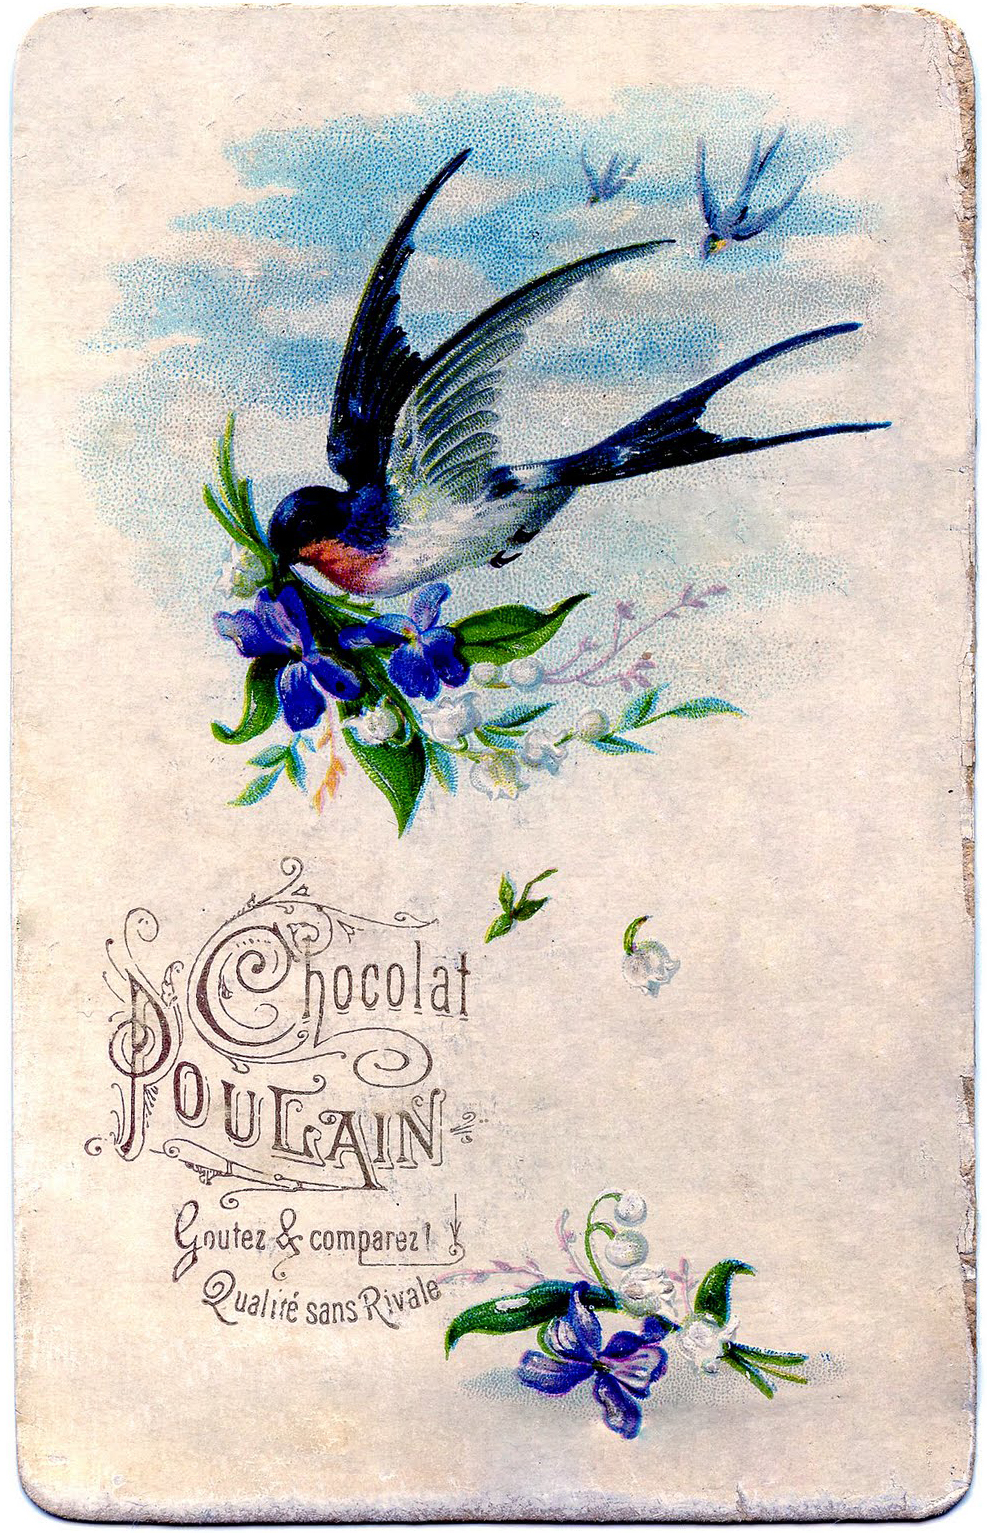 swallow+violets+vintage+image+graphicsfairy010b